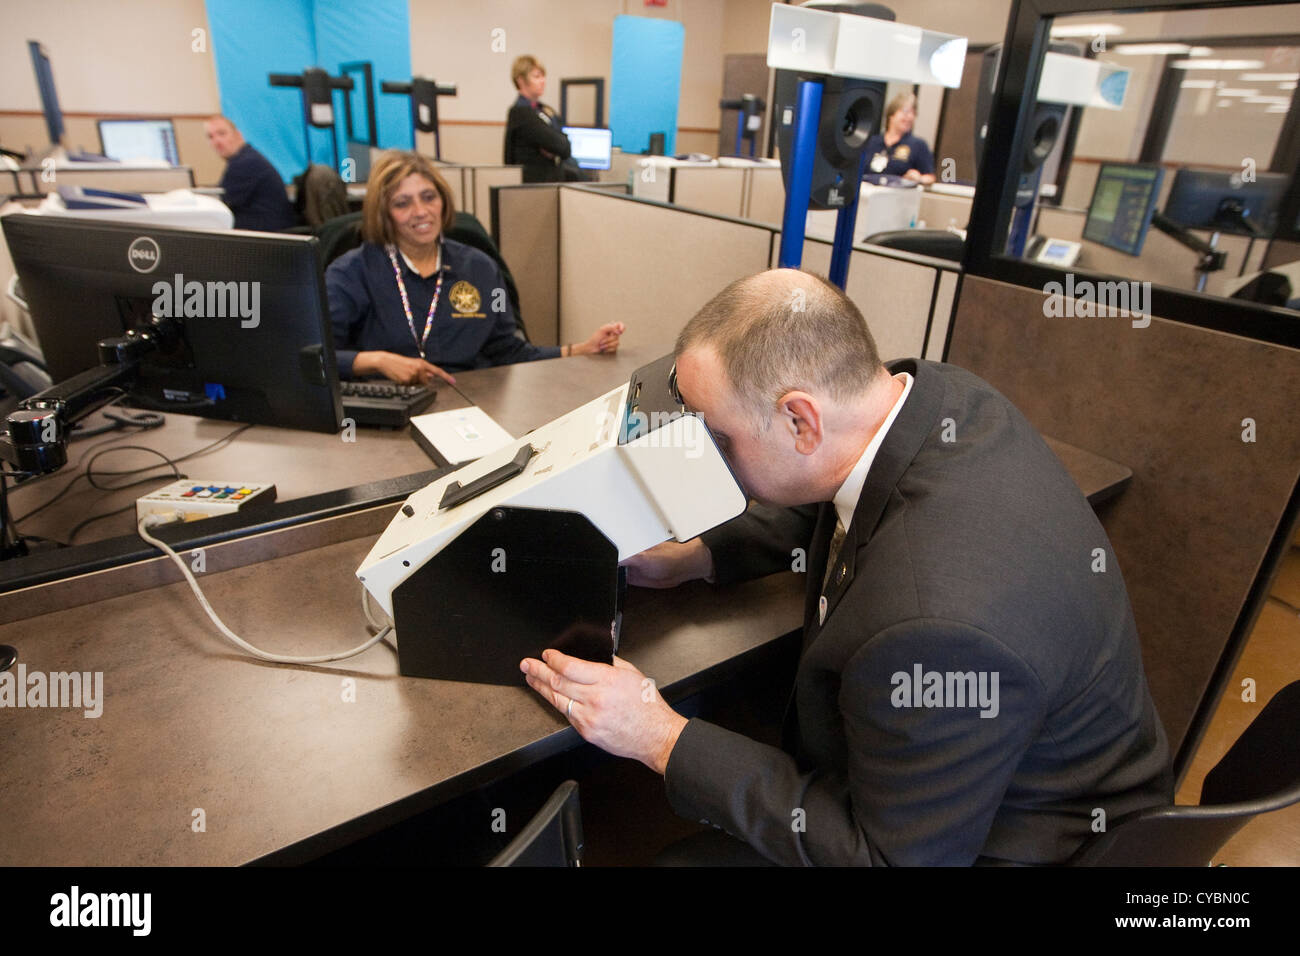 Customer in to renew driver's license gets finger-printed and Stock Photo -  Alamy